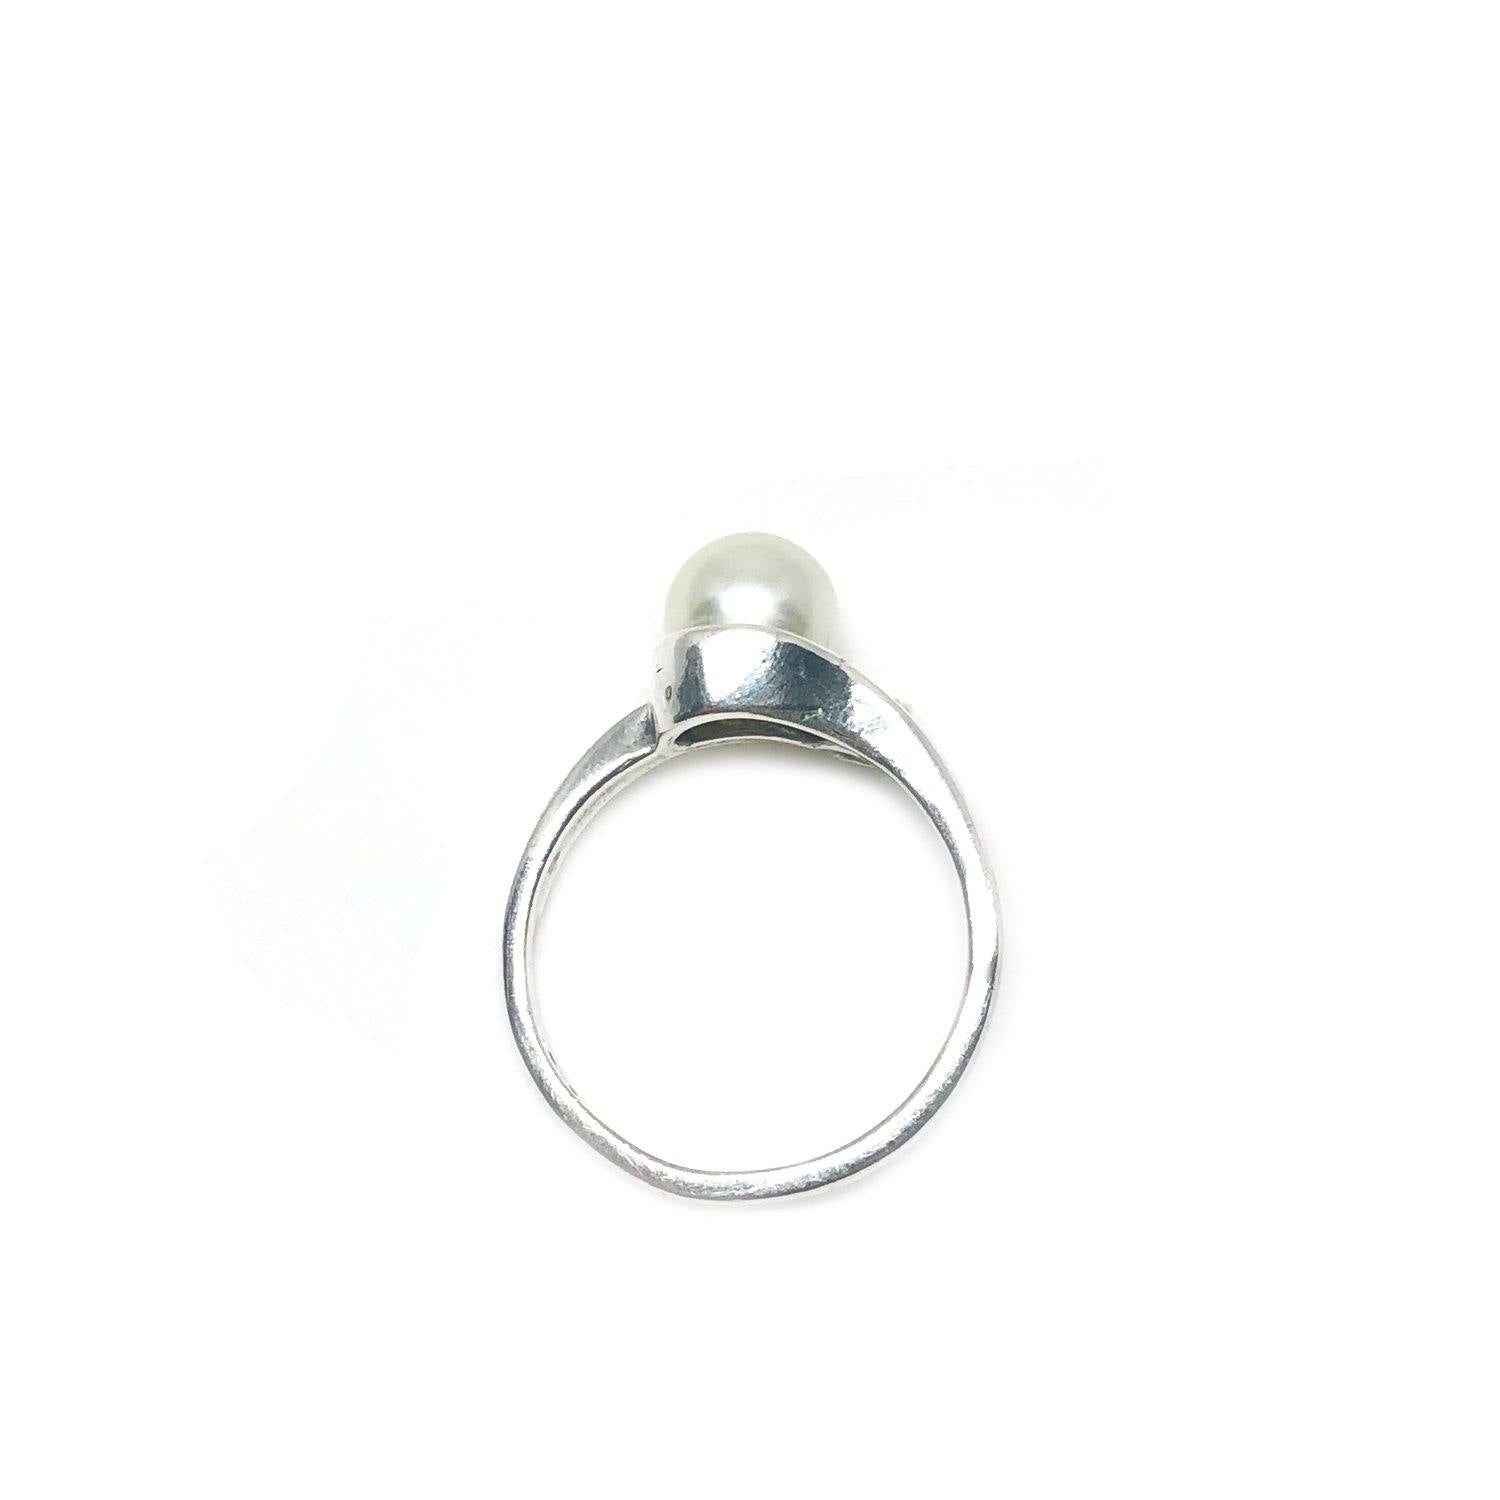 Swirl Japanese Saltwater Akoya Cultured Pearl Ring- Sterling Silver Sz 7 Side